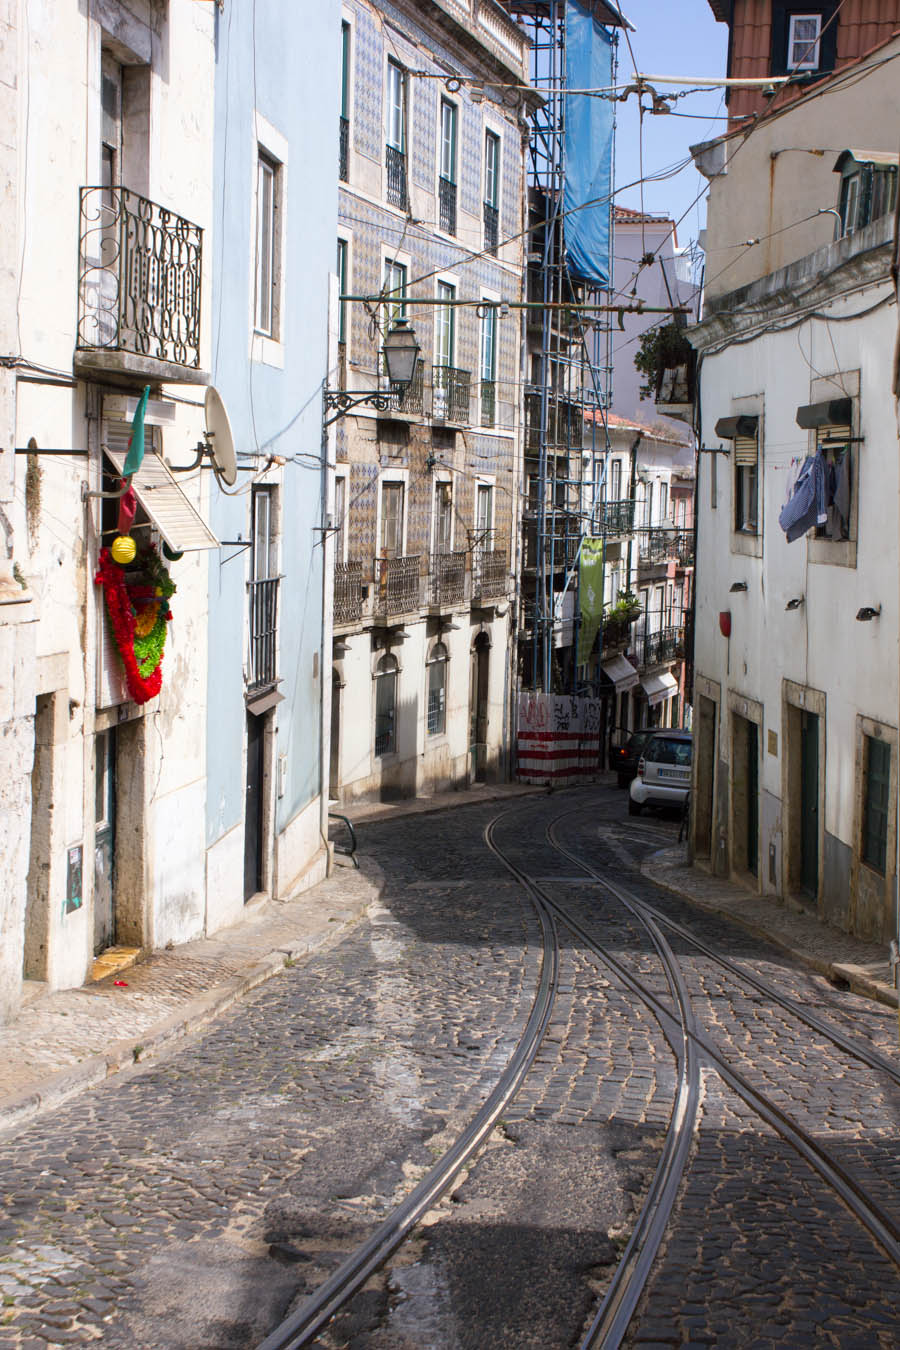 lisbon-streets-travel-tips-blackbirdsblossom-6